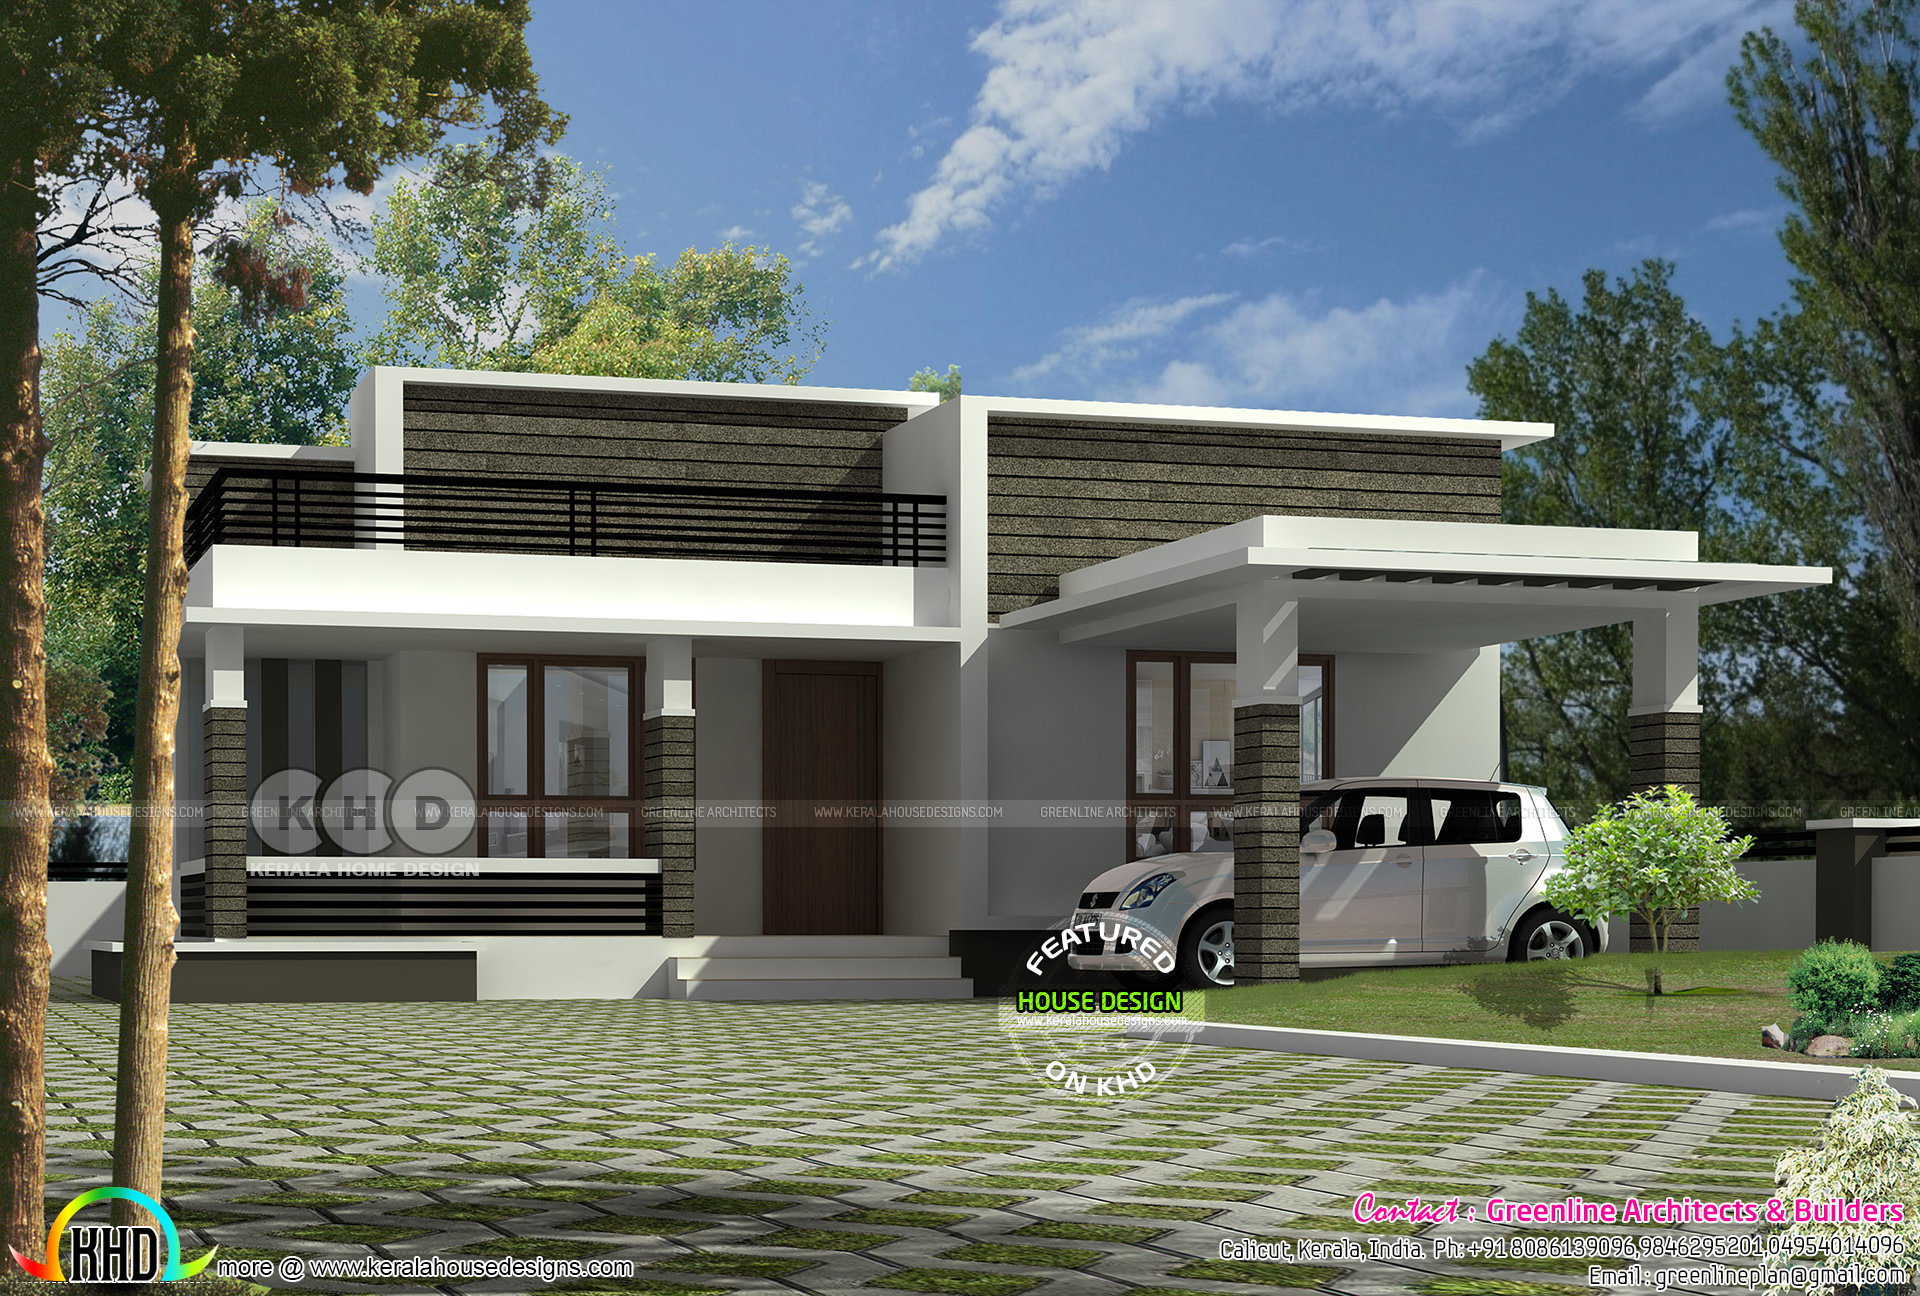 Flat Roof 1287 Sq Ft Single Floor Home Kerala Home Design And Floor Plans 8000 Houses